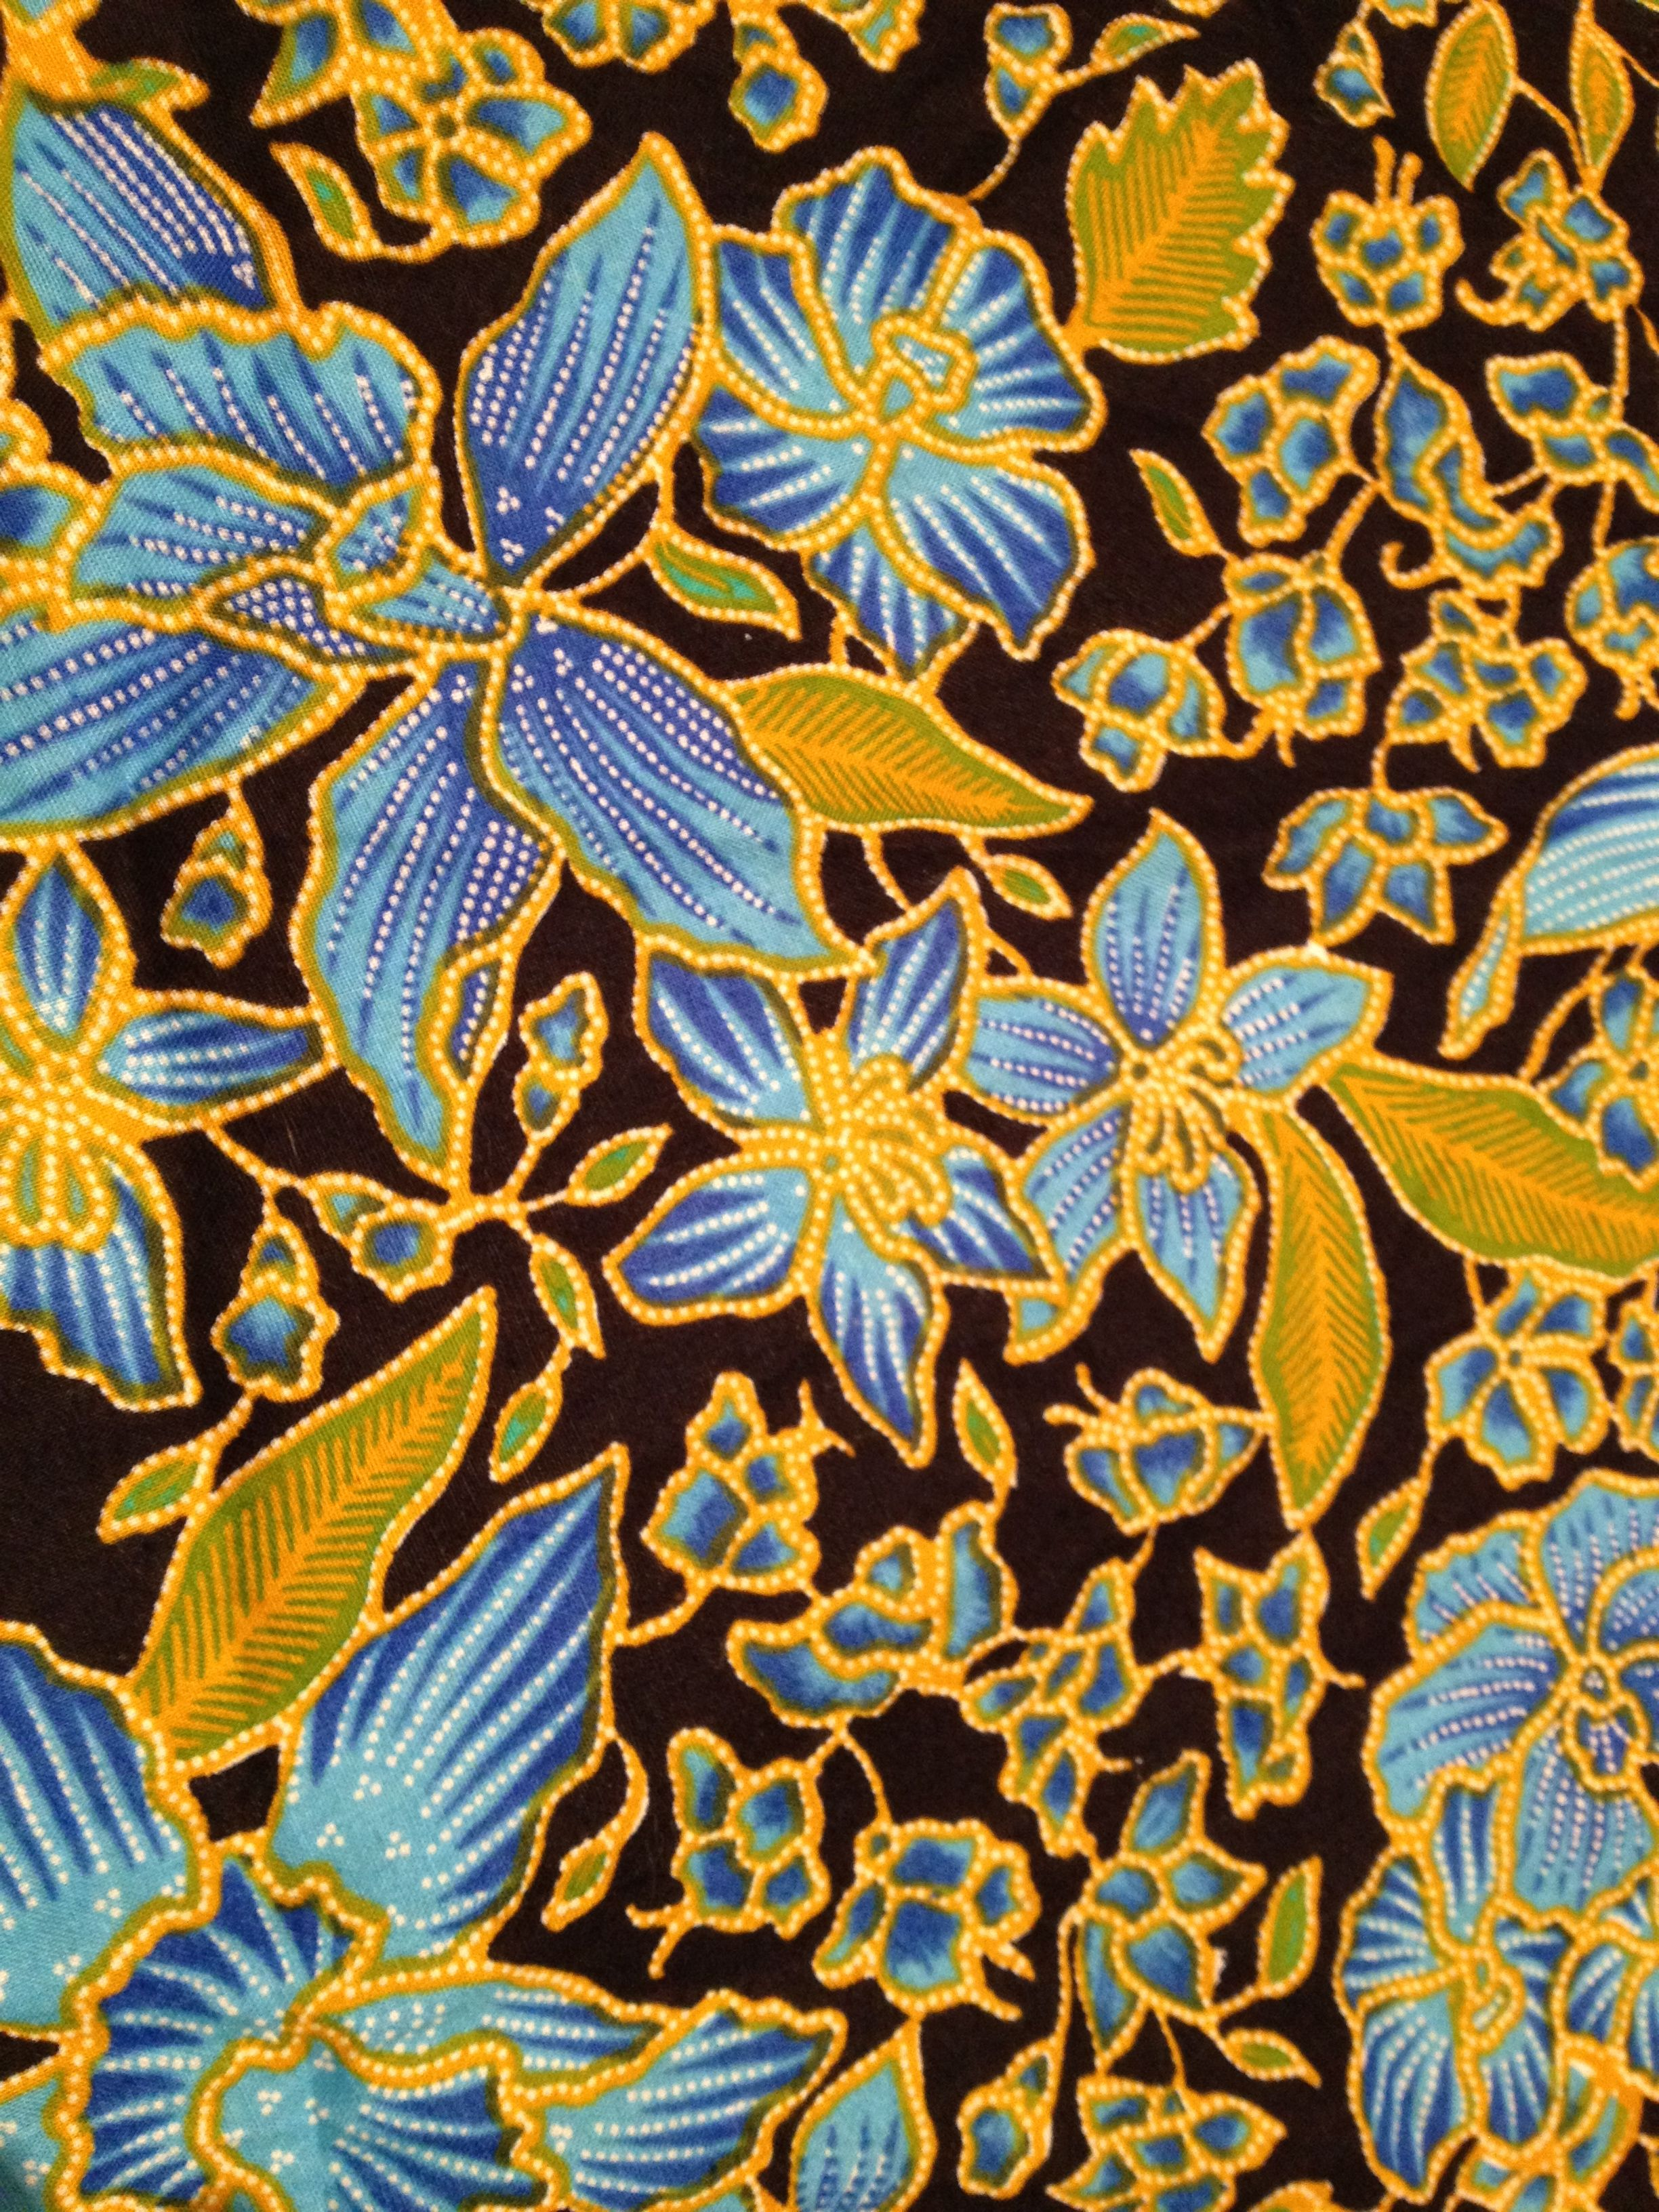 BonEful FABRIC FQ Cotton Quilt VTG Blue Gold Paisley Flower Ethnic Indian Print